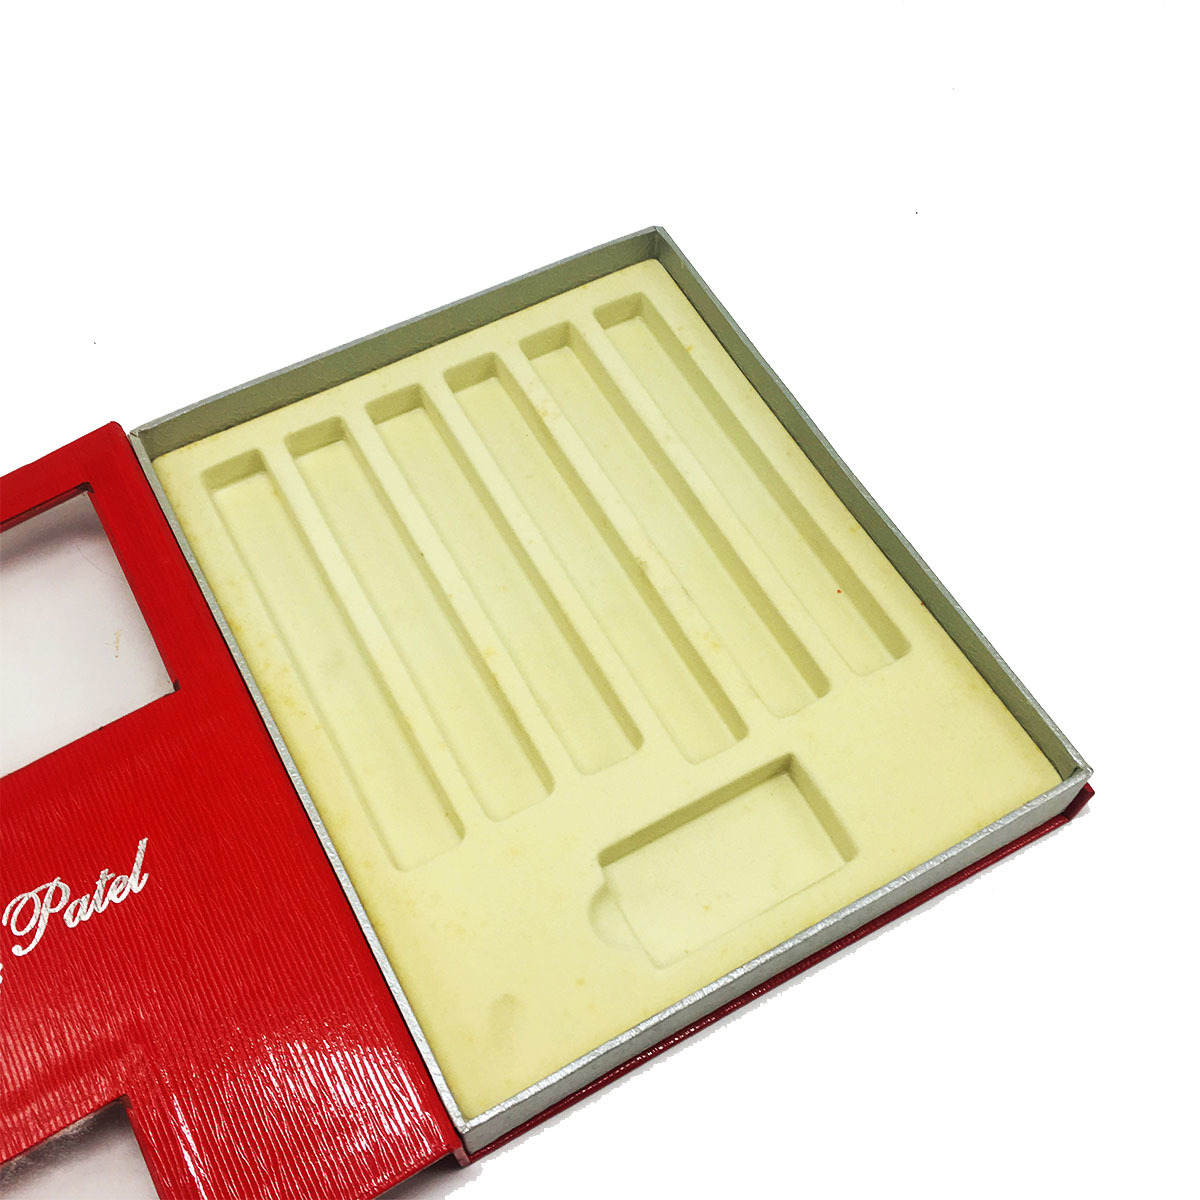 Luxury holiday cigar candle gift box with inserts with PVC windows